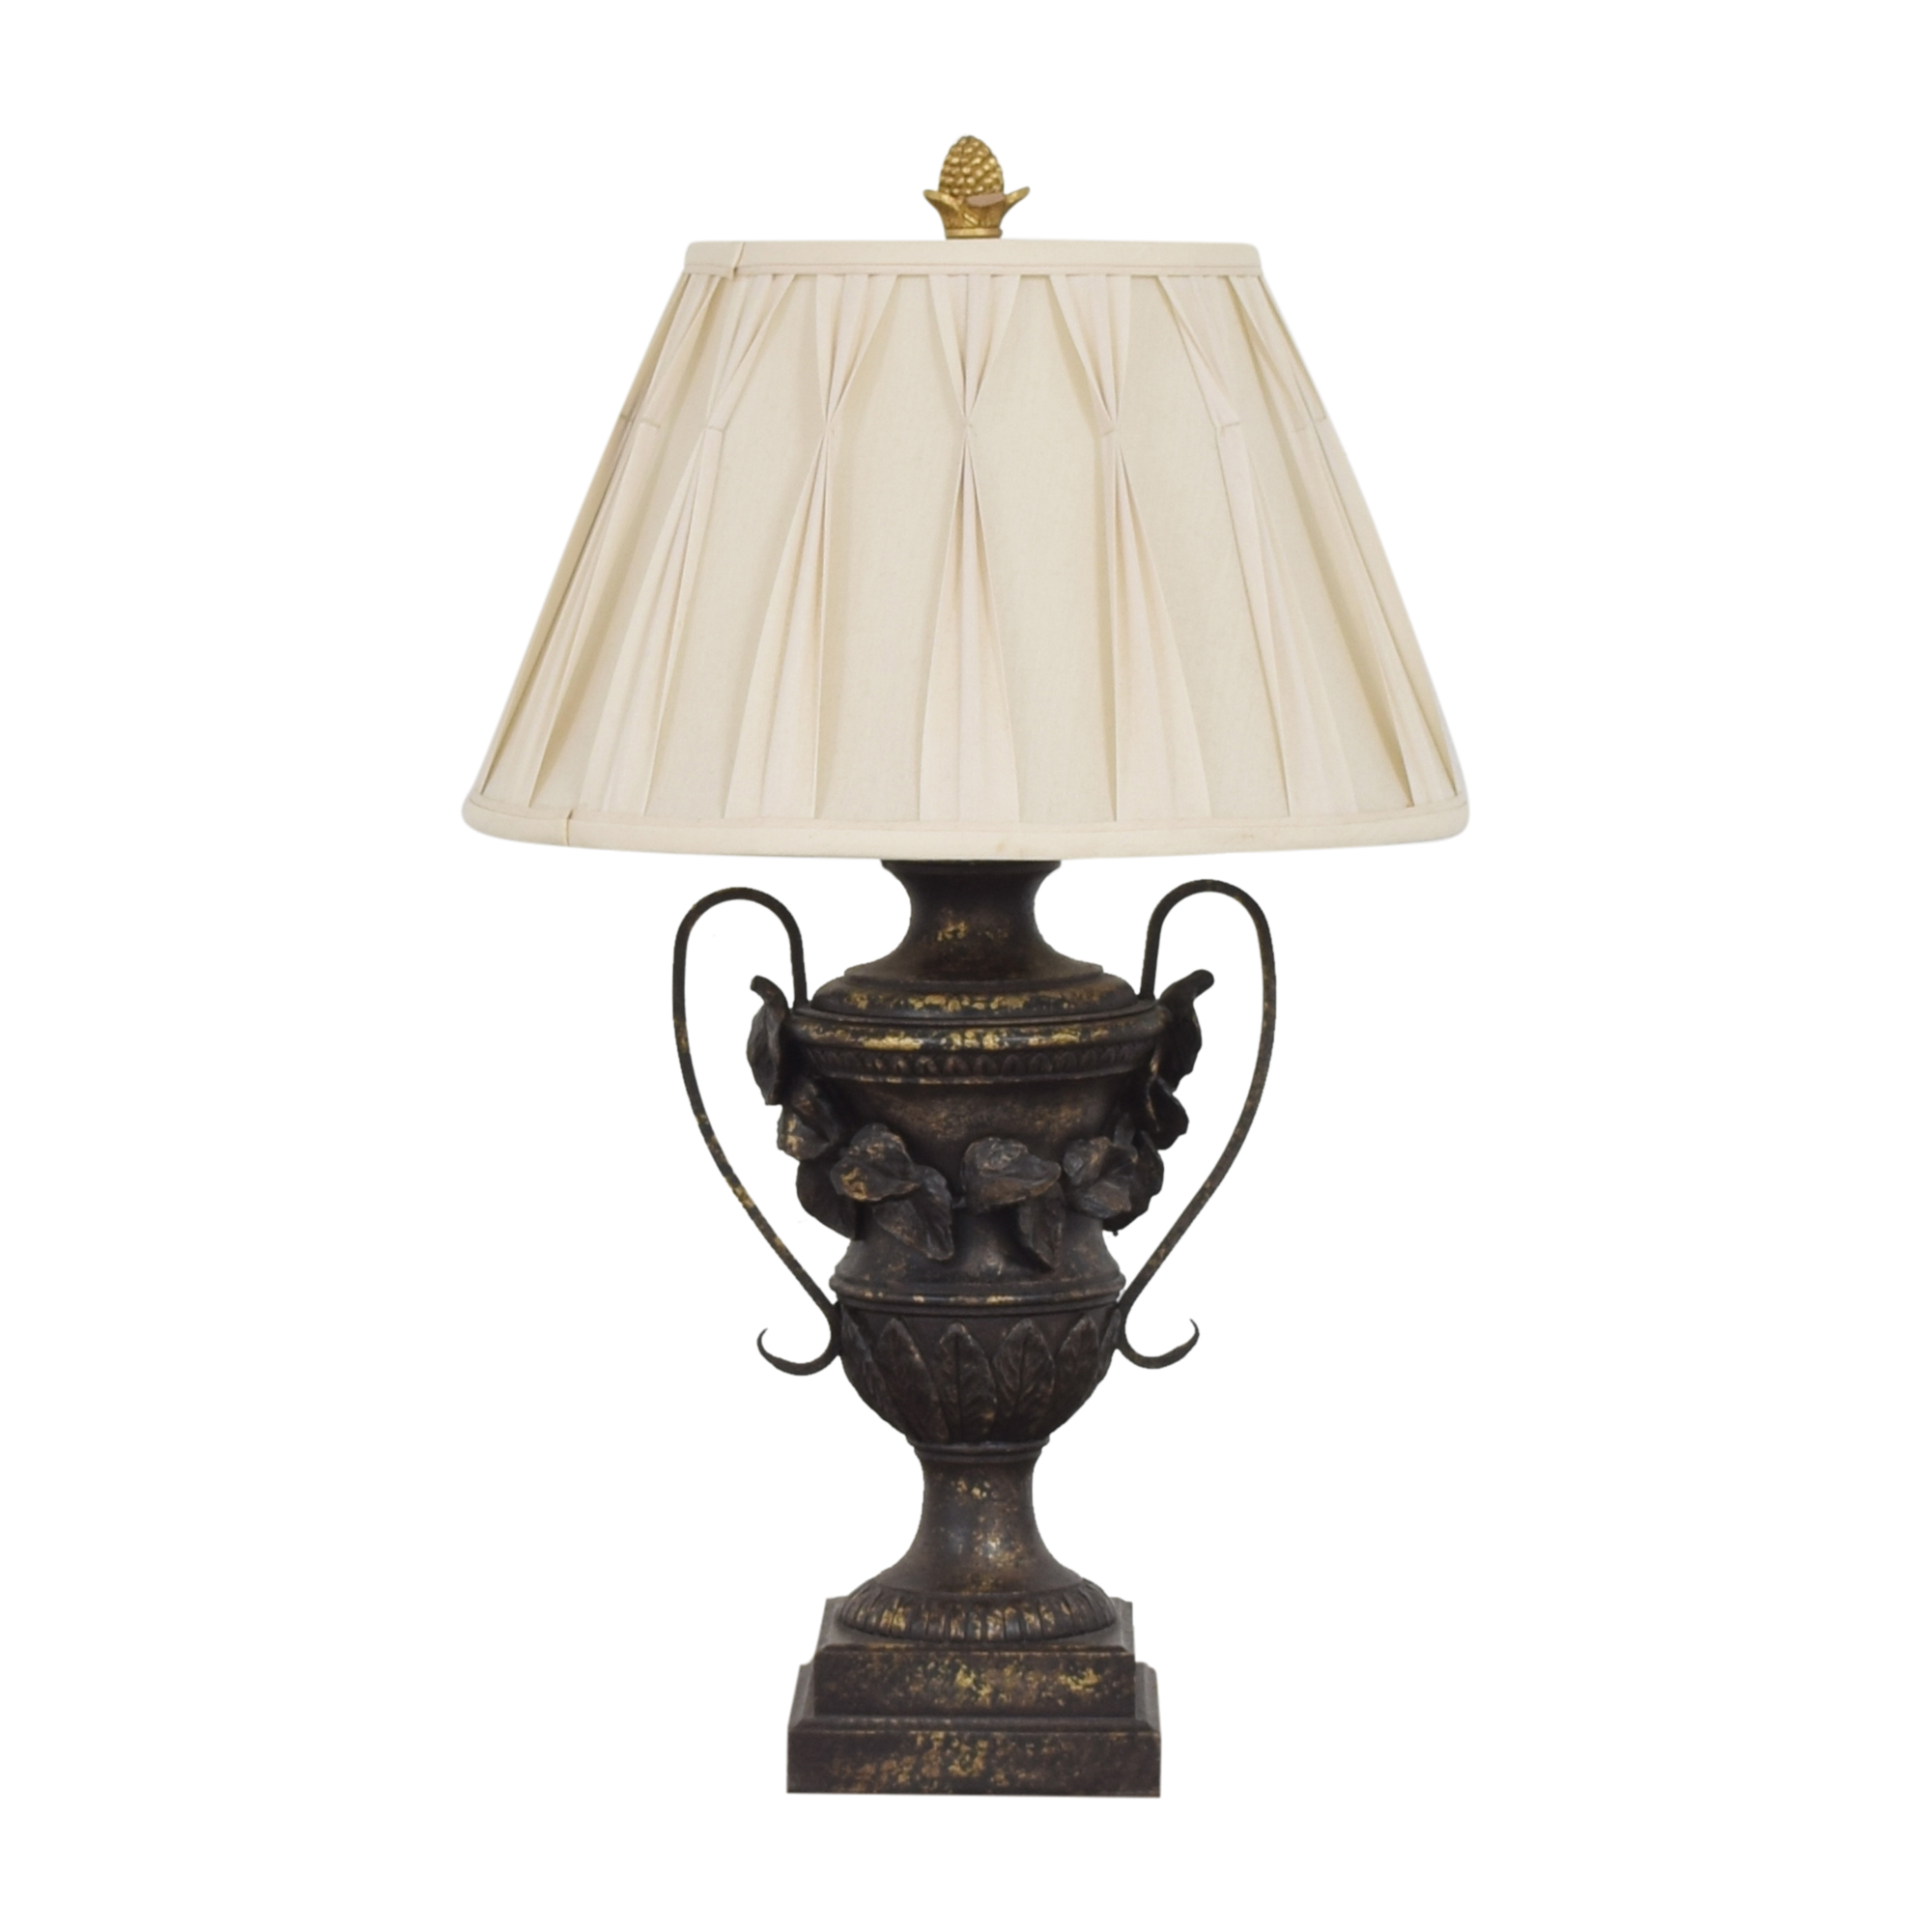 Ethan Allen Ethan Allen Decorative Urn Table Lamp black and off white